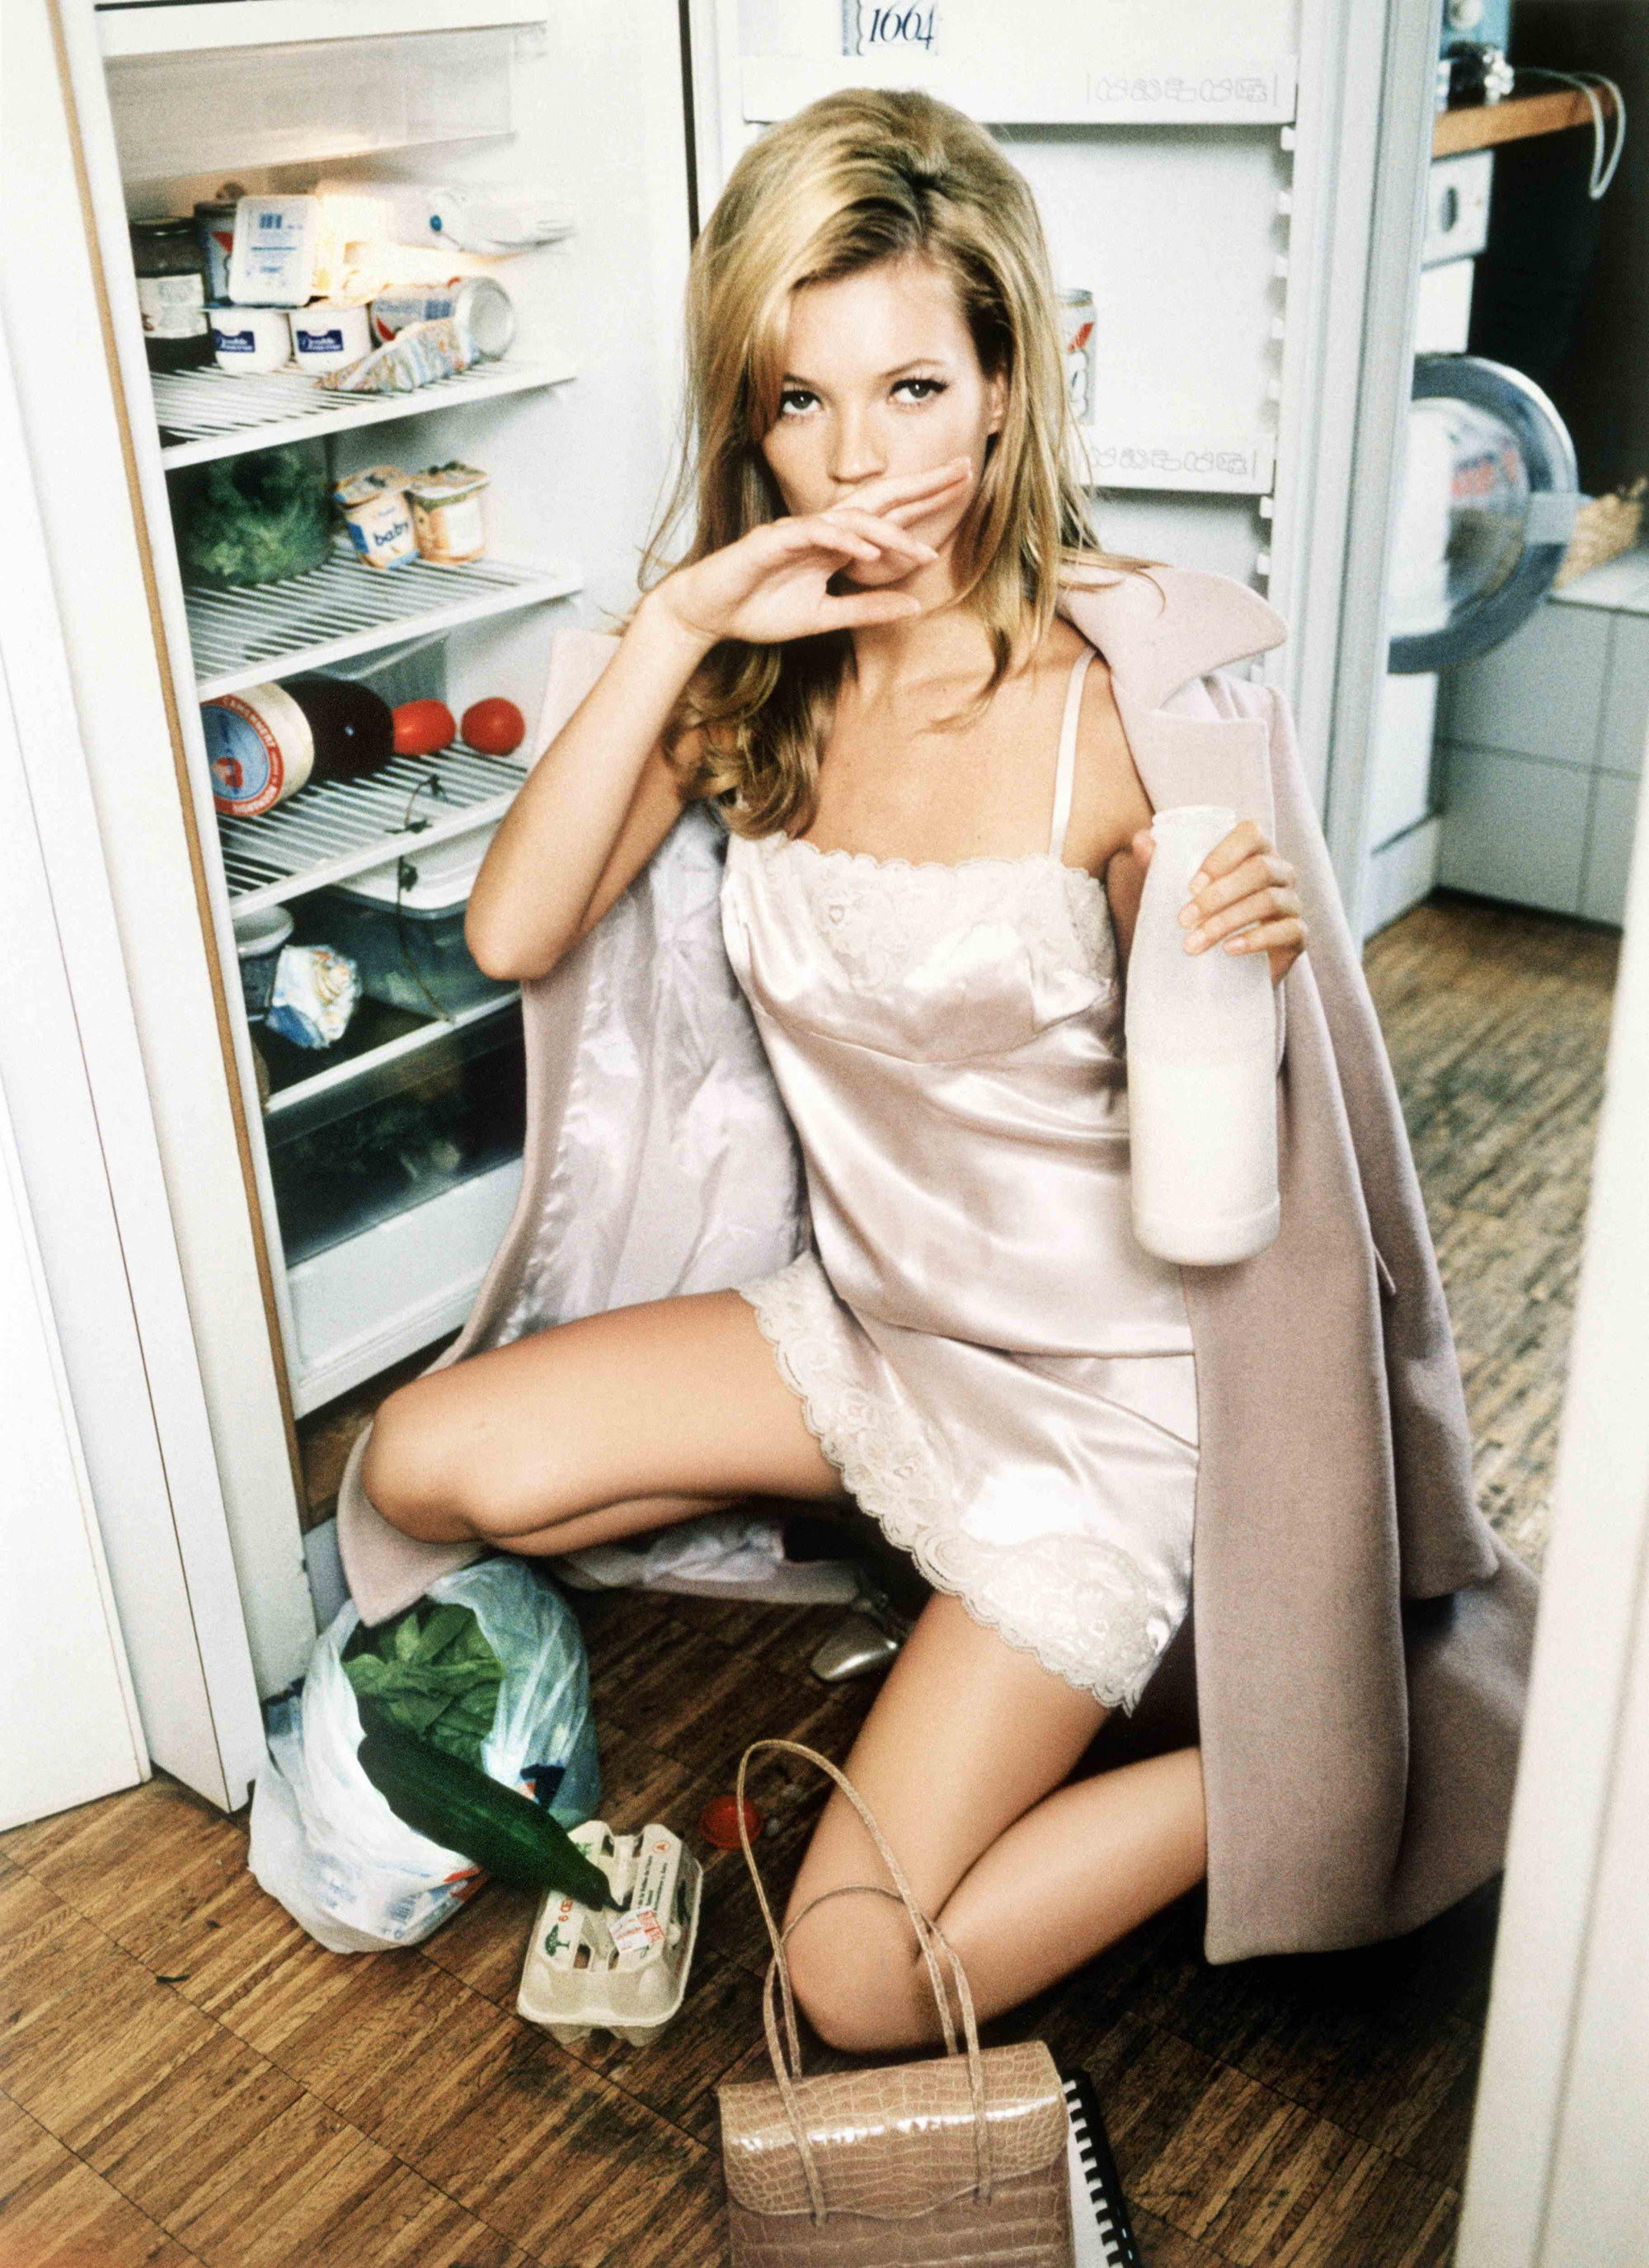 Kate Moss in a slip dress and coat in front of an open refrigerator with groceries on the ground, drinking milk